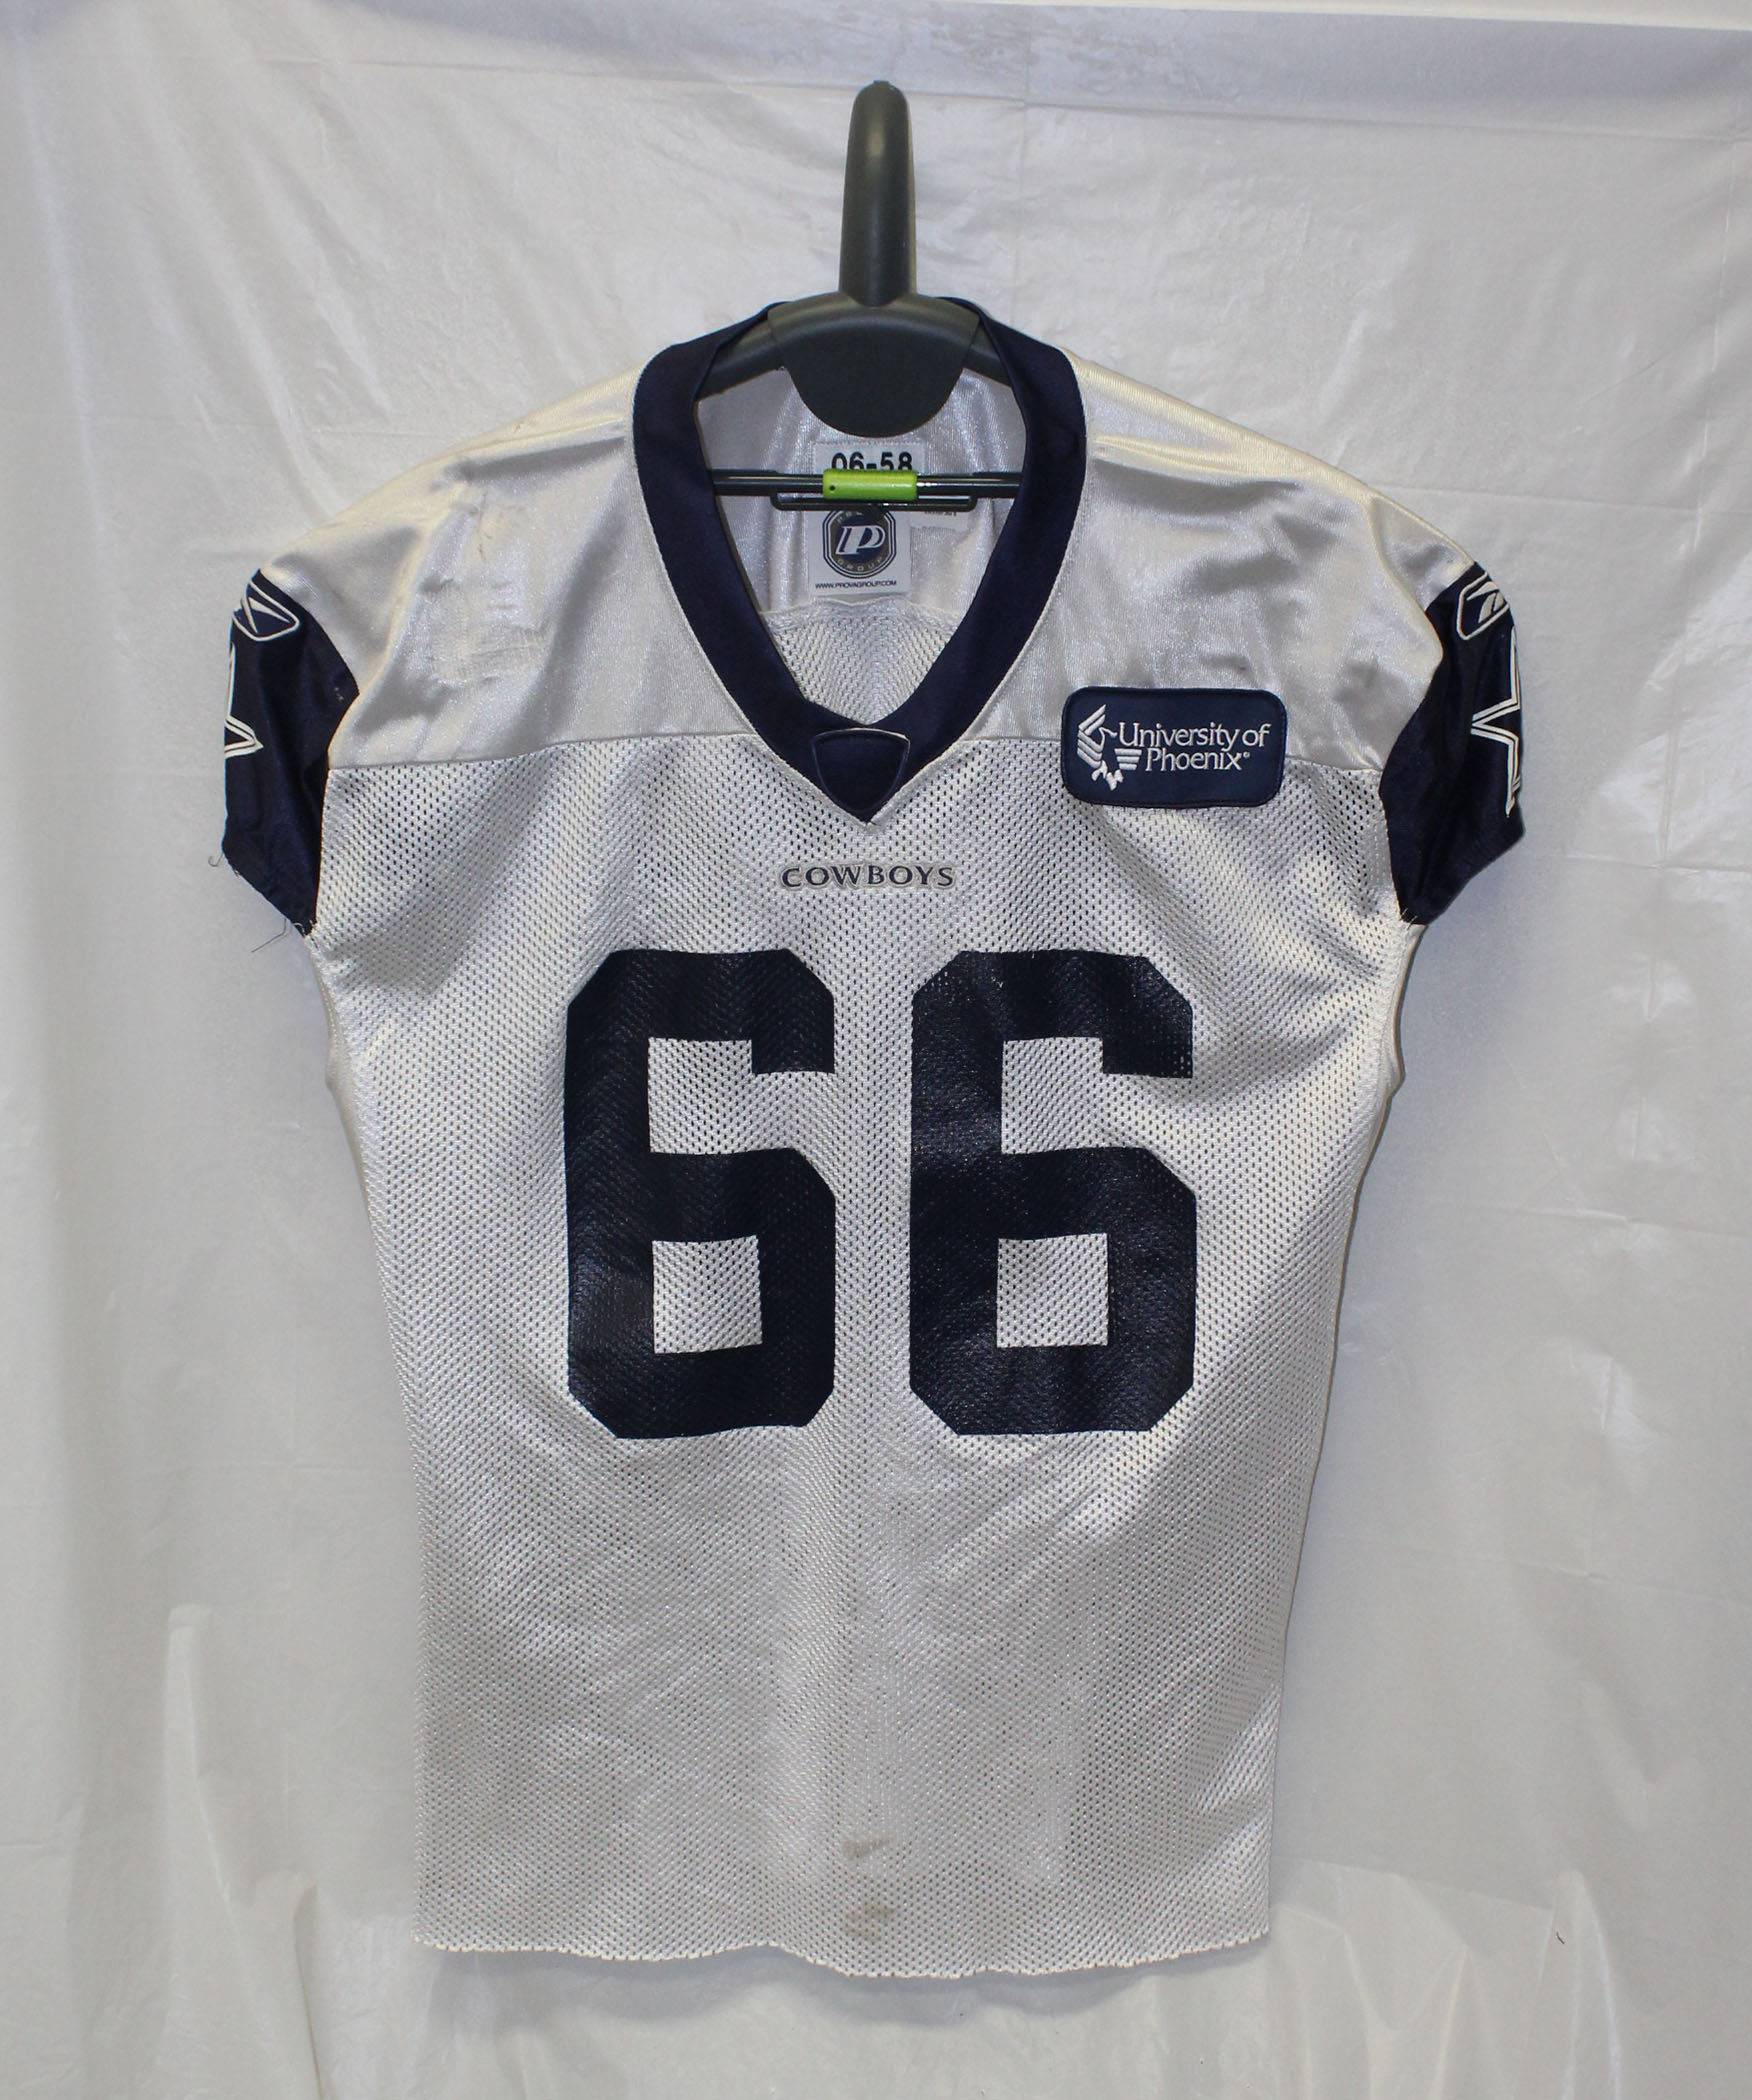 100% authentic 36412 c8400 Dallas Cowboys Reebok Authentic Practice Worn Jersey with Blue U of Phoenix  Patch - WHITE